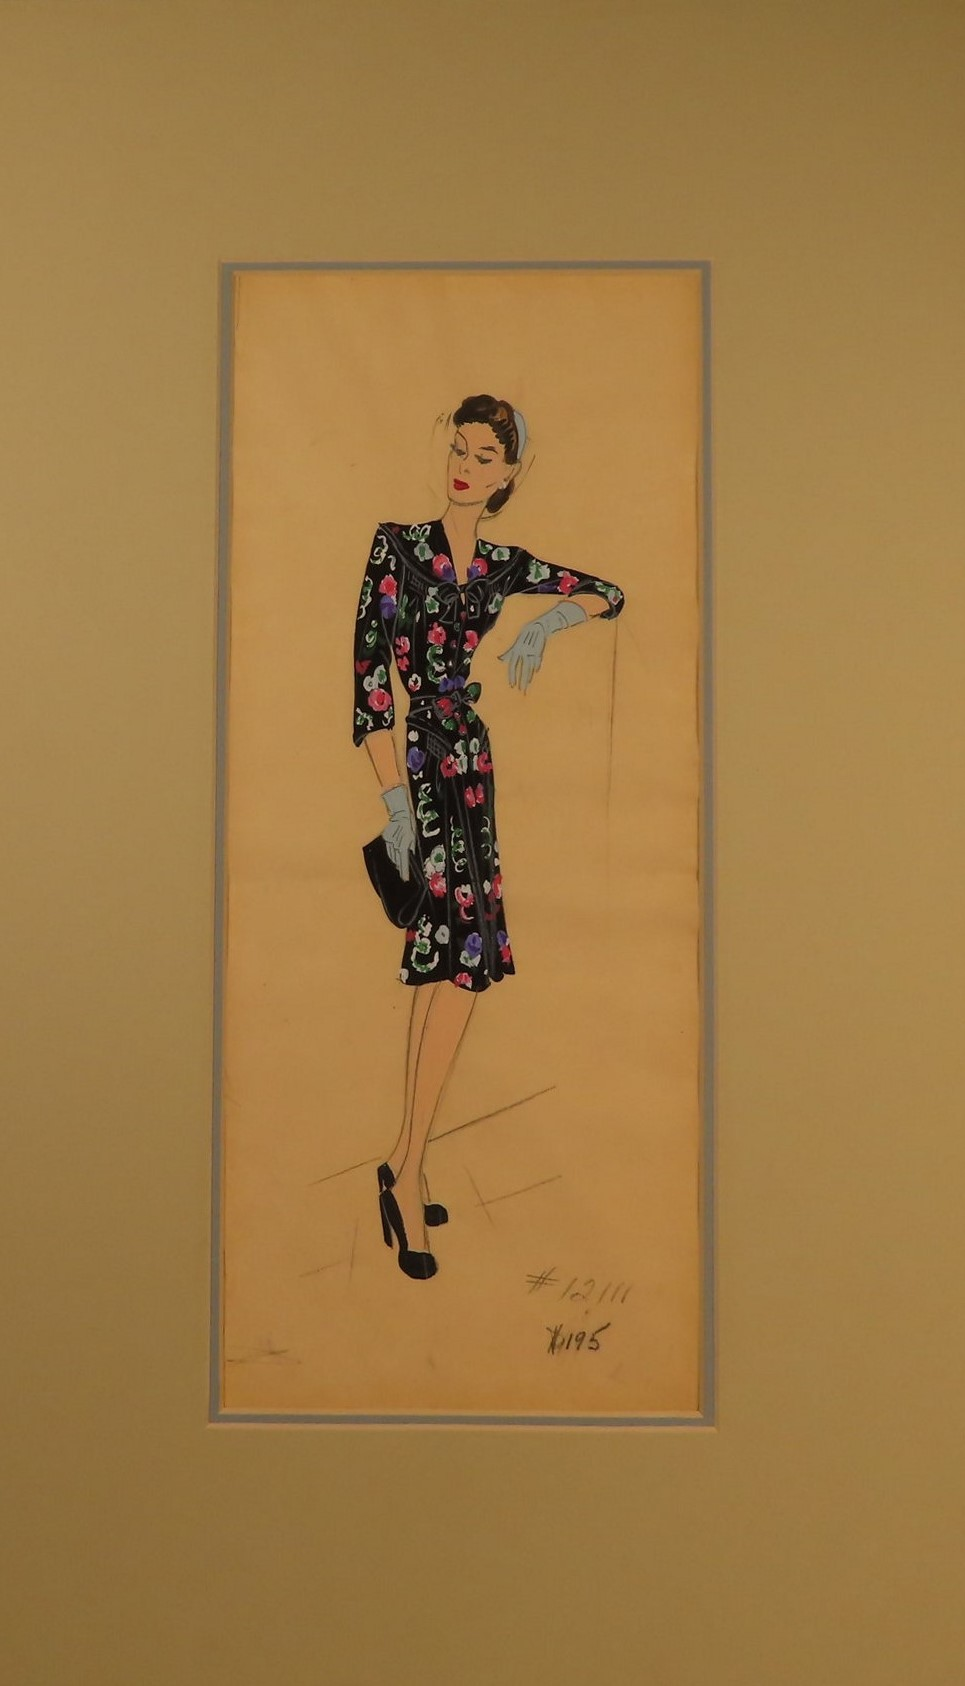 Image for Original fashion design in gouache